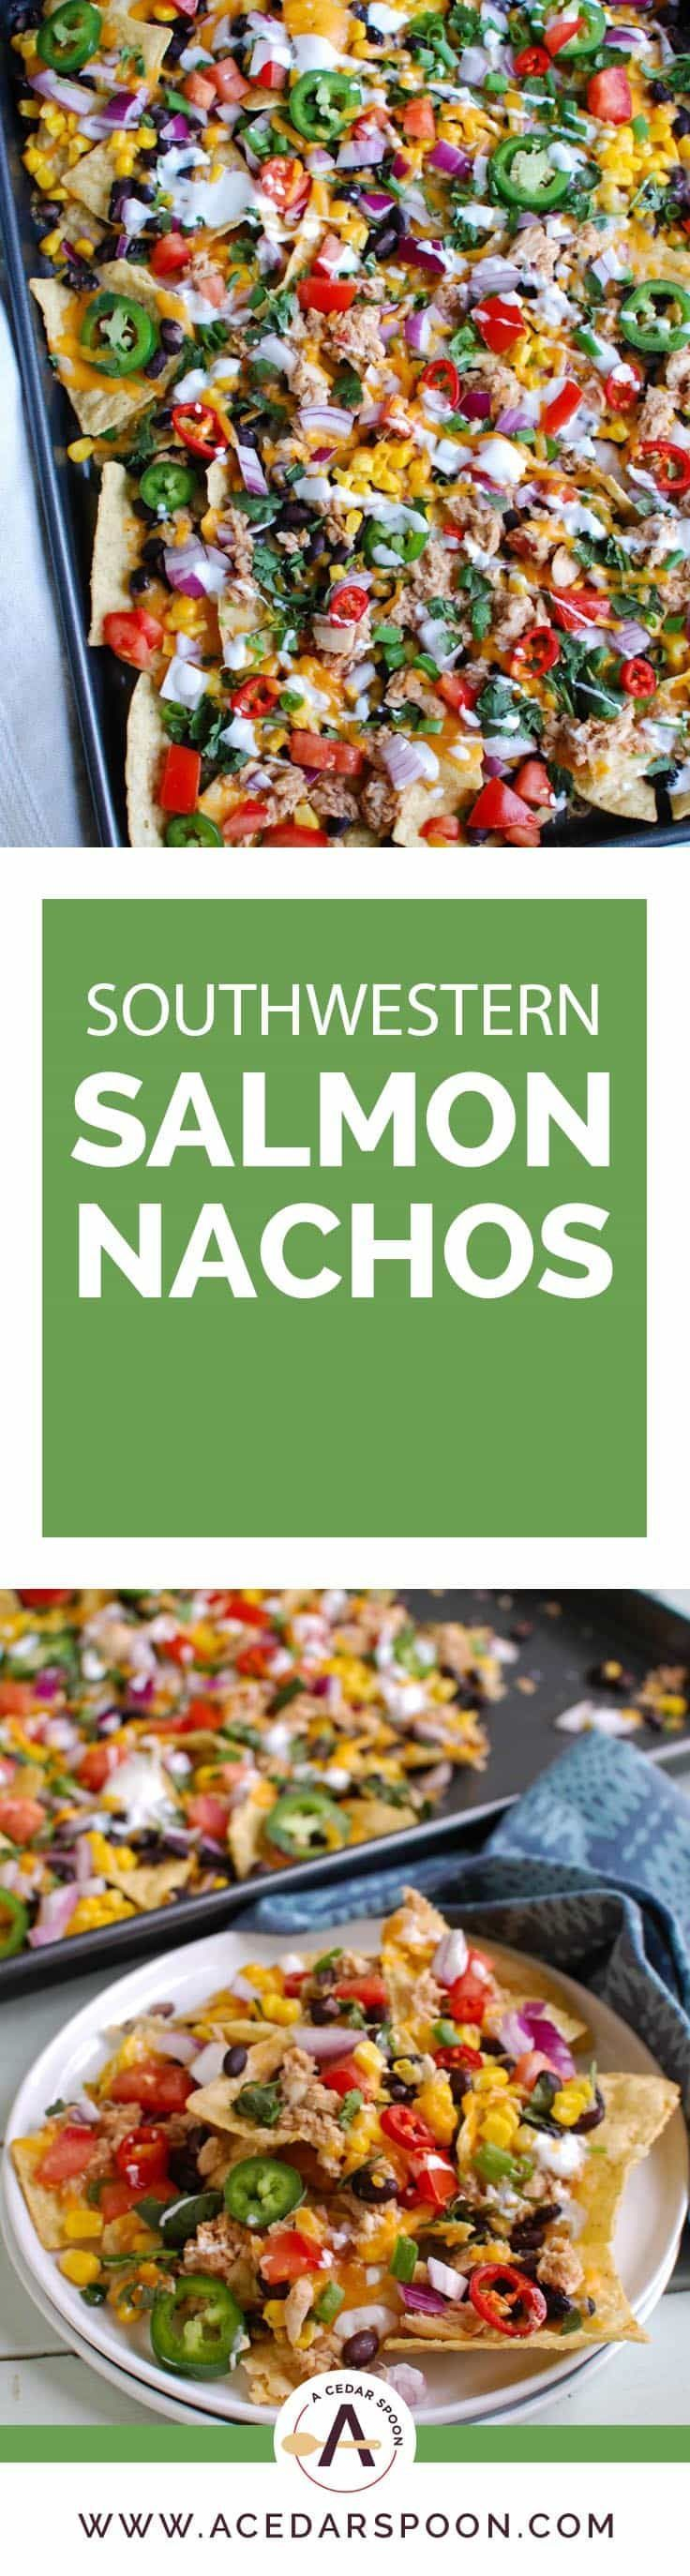 Southwestern Salmon Nachos take traditional nachos to a new level mixing salsa and salmon together and topping that with black beans, corn, shredded cheese, tomatoes, red onion, cilantro, green onion, jalapenos, red chiles and a drizzle of sour cream. The